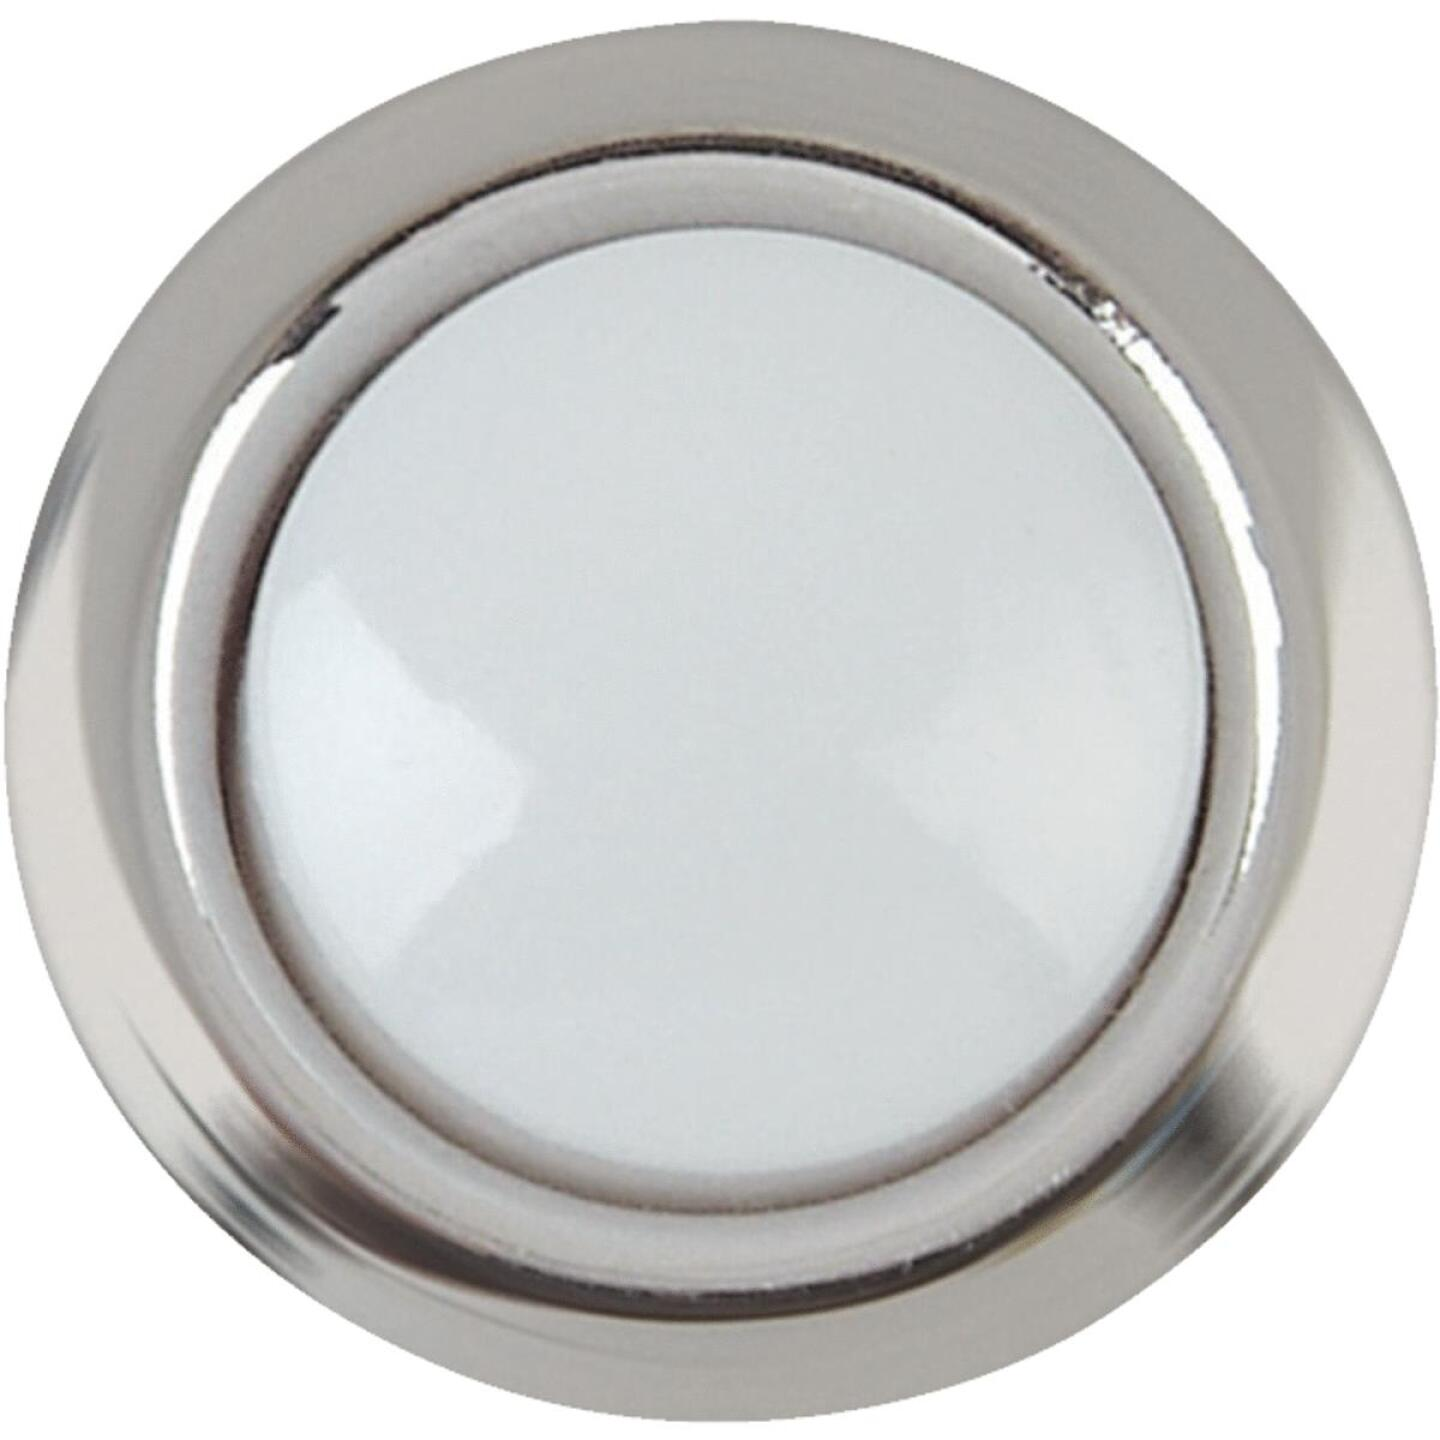 IQ America Wired Silver Round Lighted Doorbell Push-Button Image 1